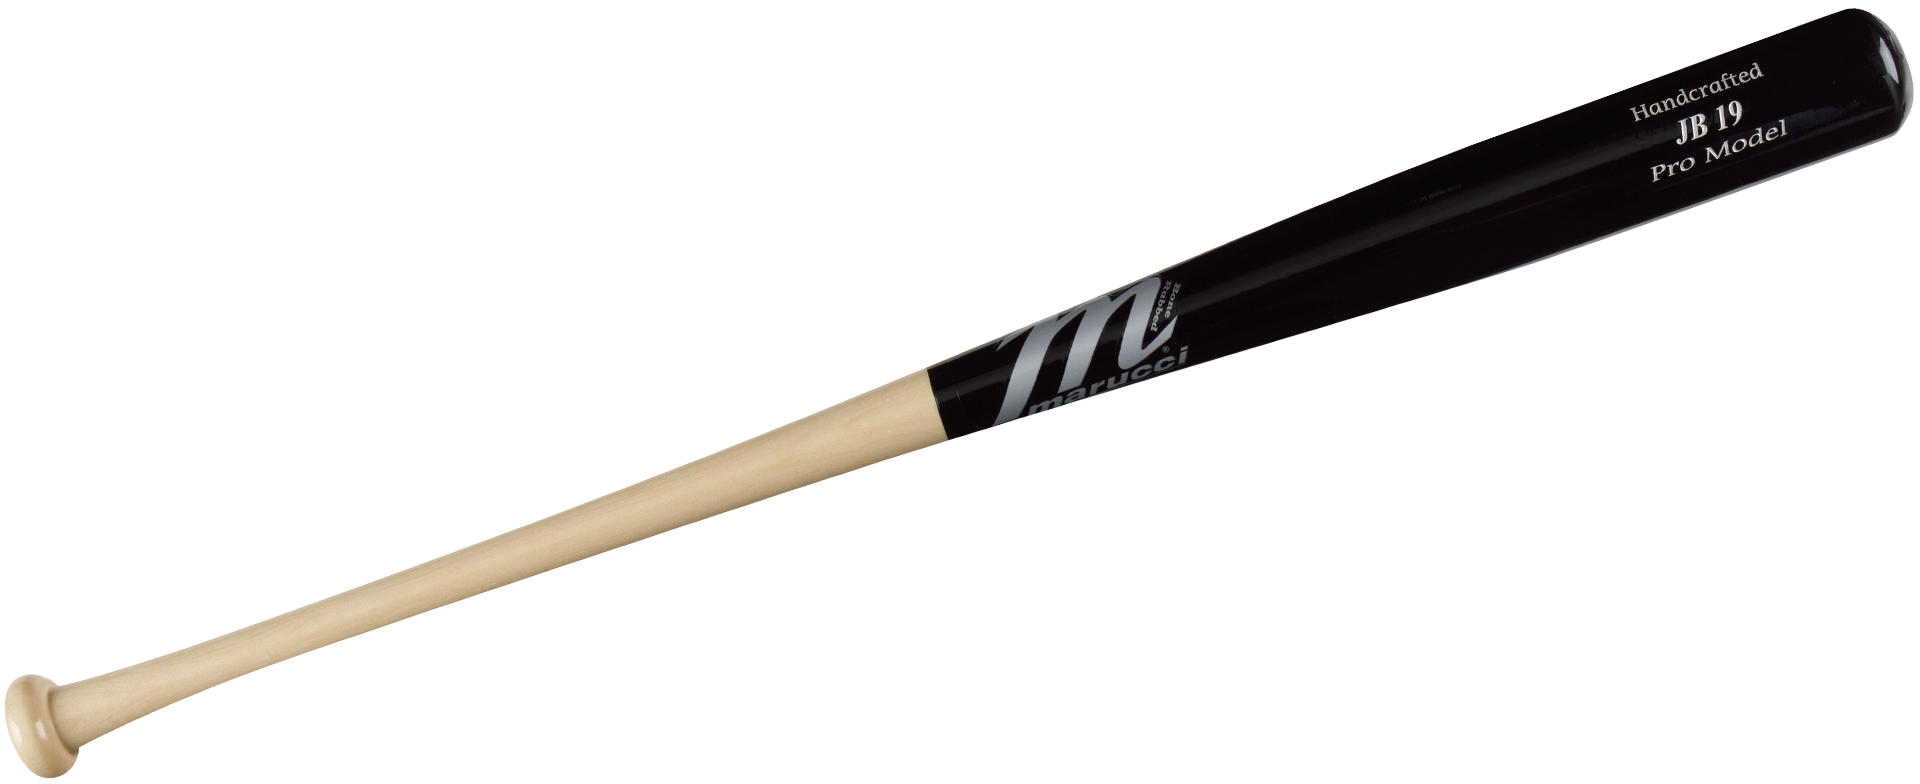 Baseball Bat Transparent PNG Clipart Free Download.